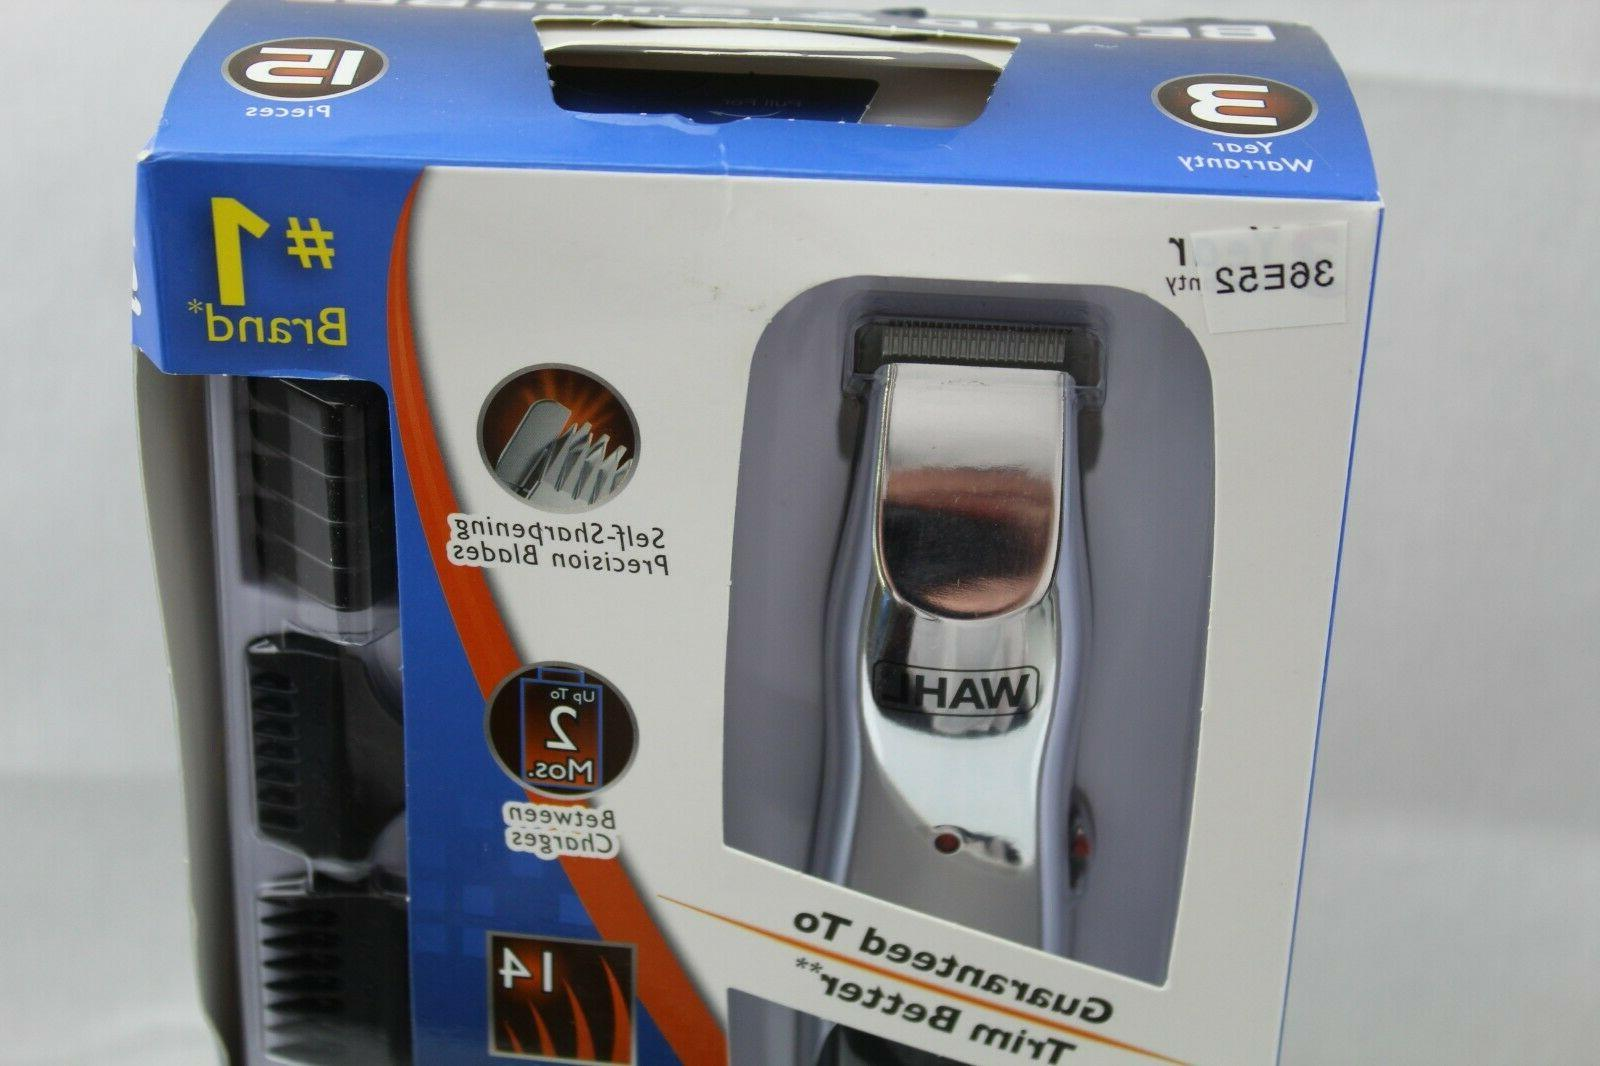 WAHL #9916-4301 Rechargeable Cordless Groomer